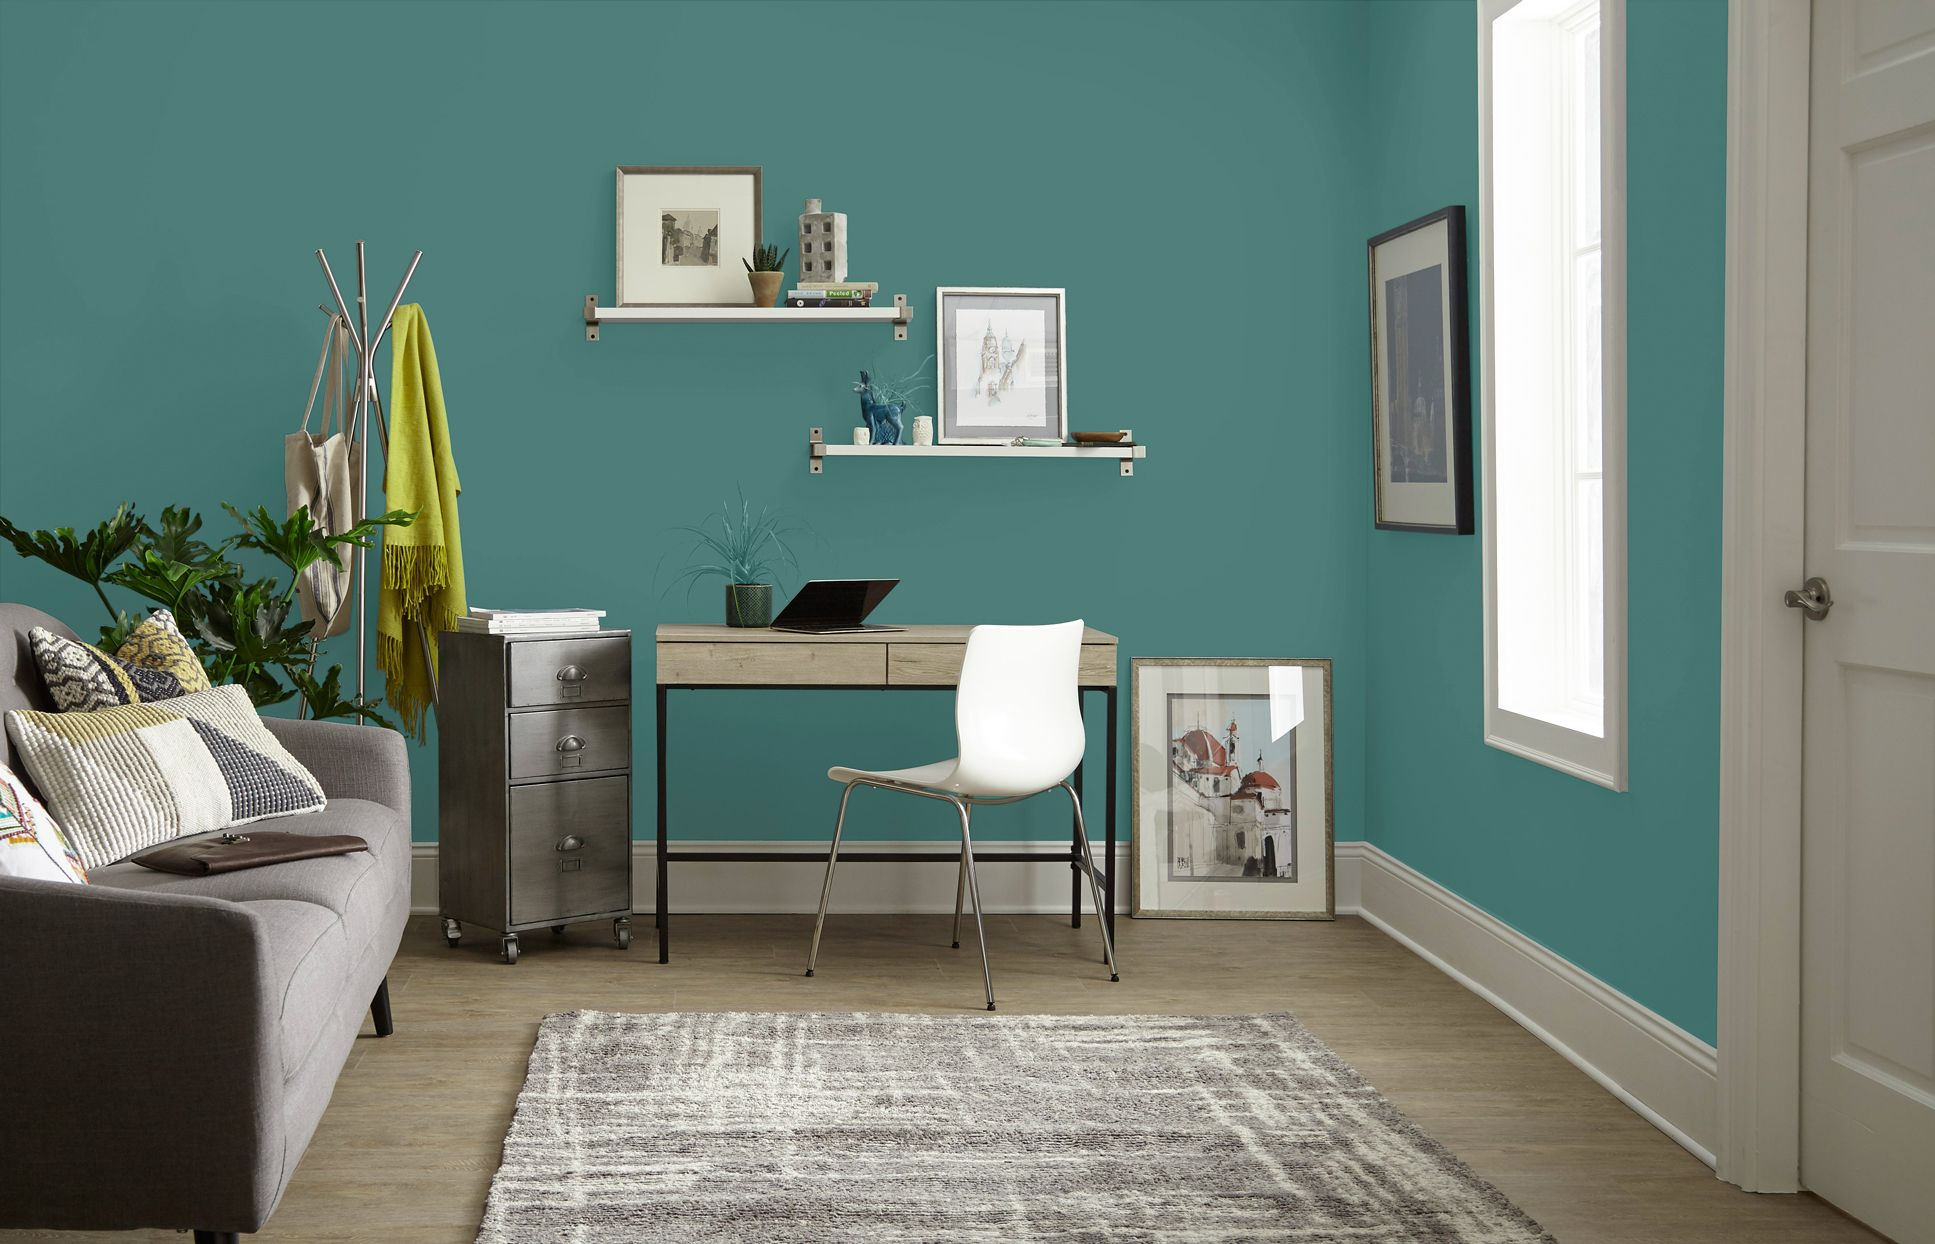 The Best Paint Colors For Your Home Office In 2020 With Images Office Wall Colors Home Office Colors Best Paint Colors